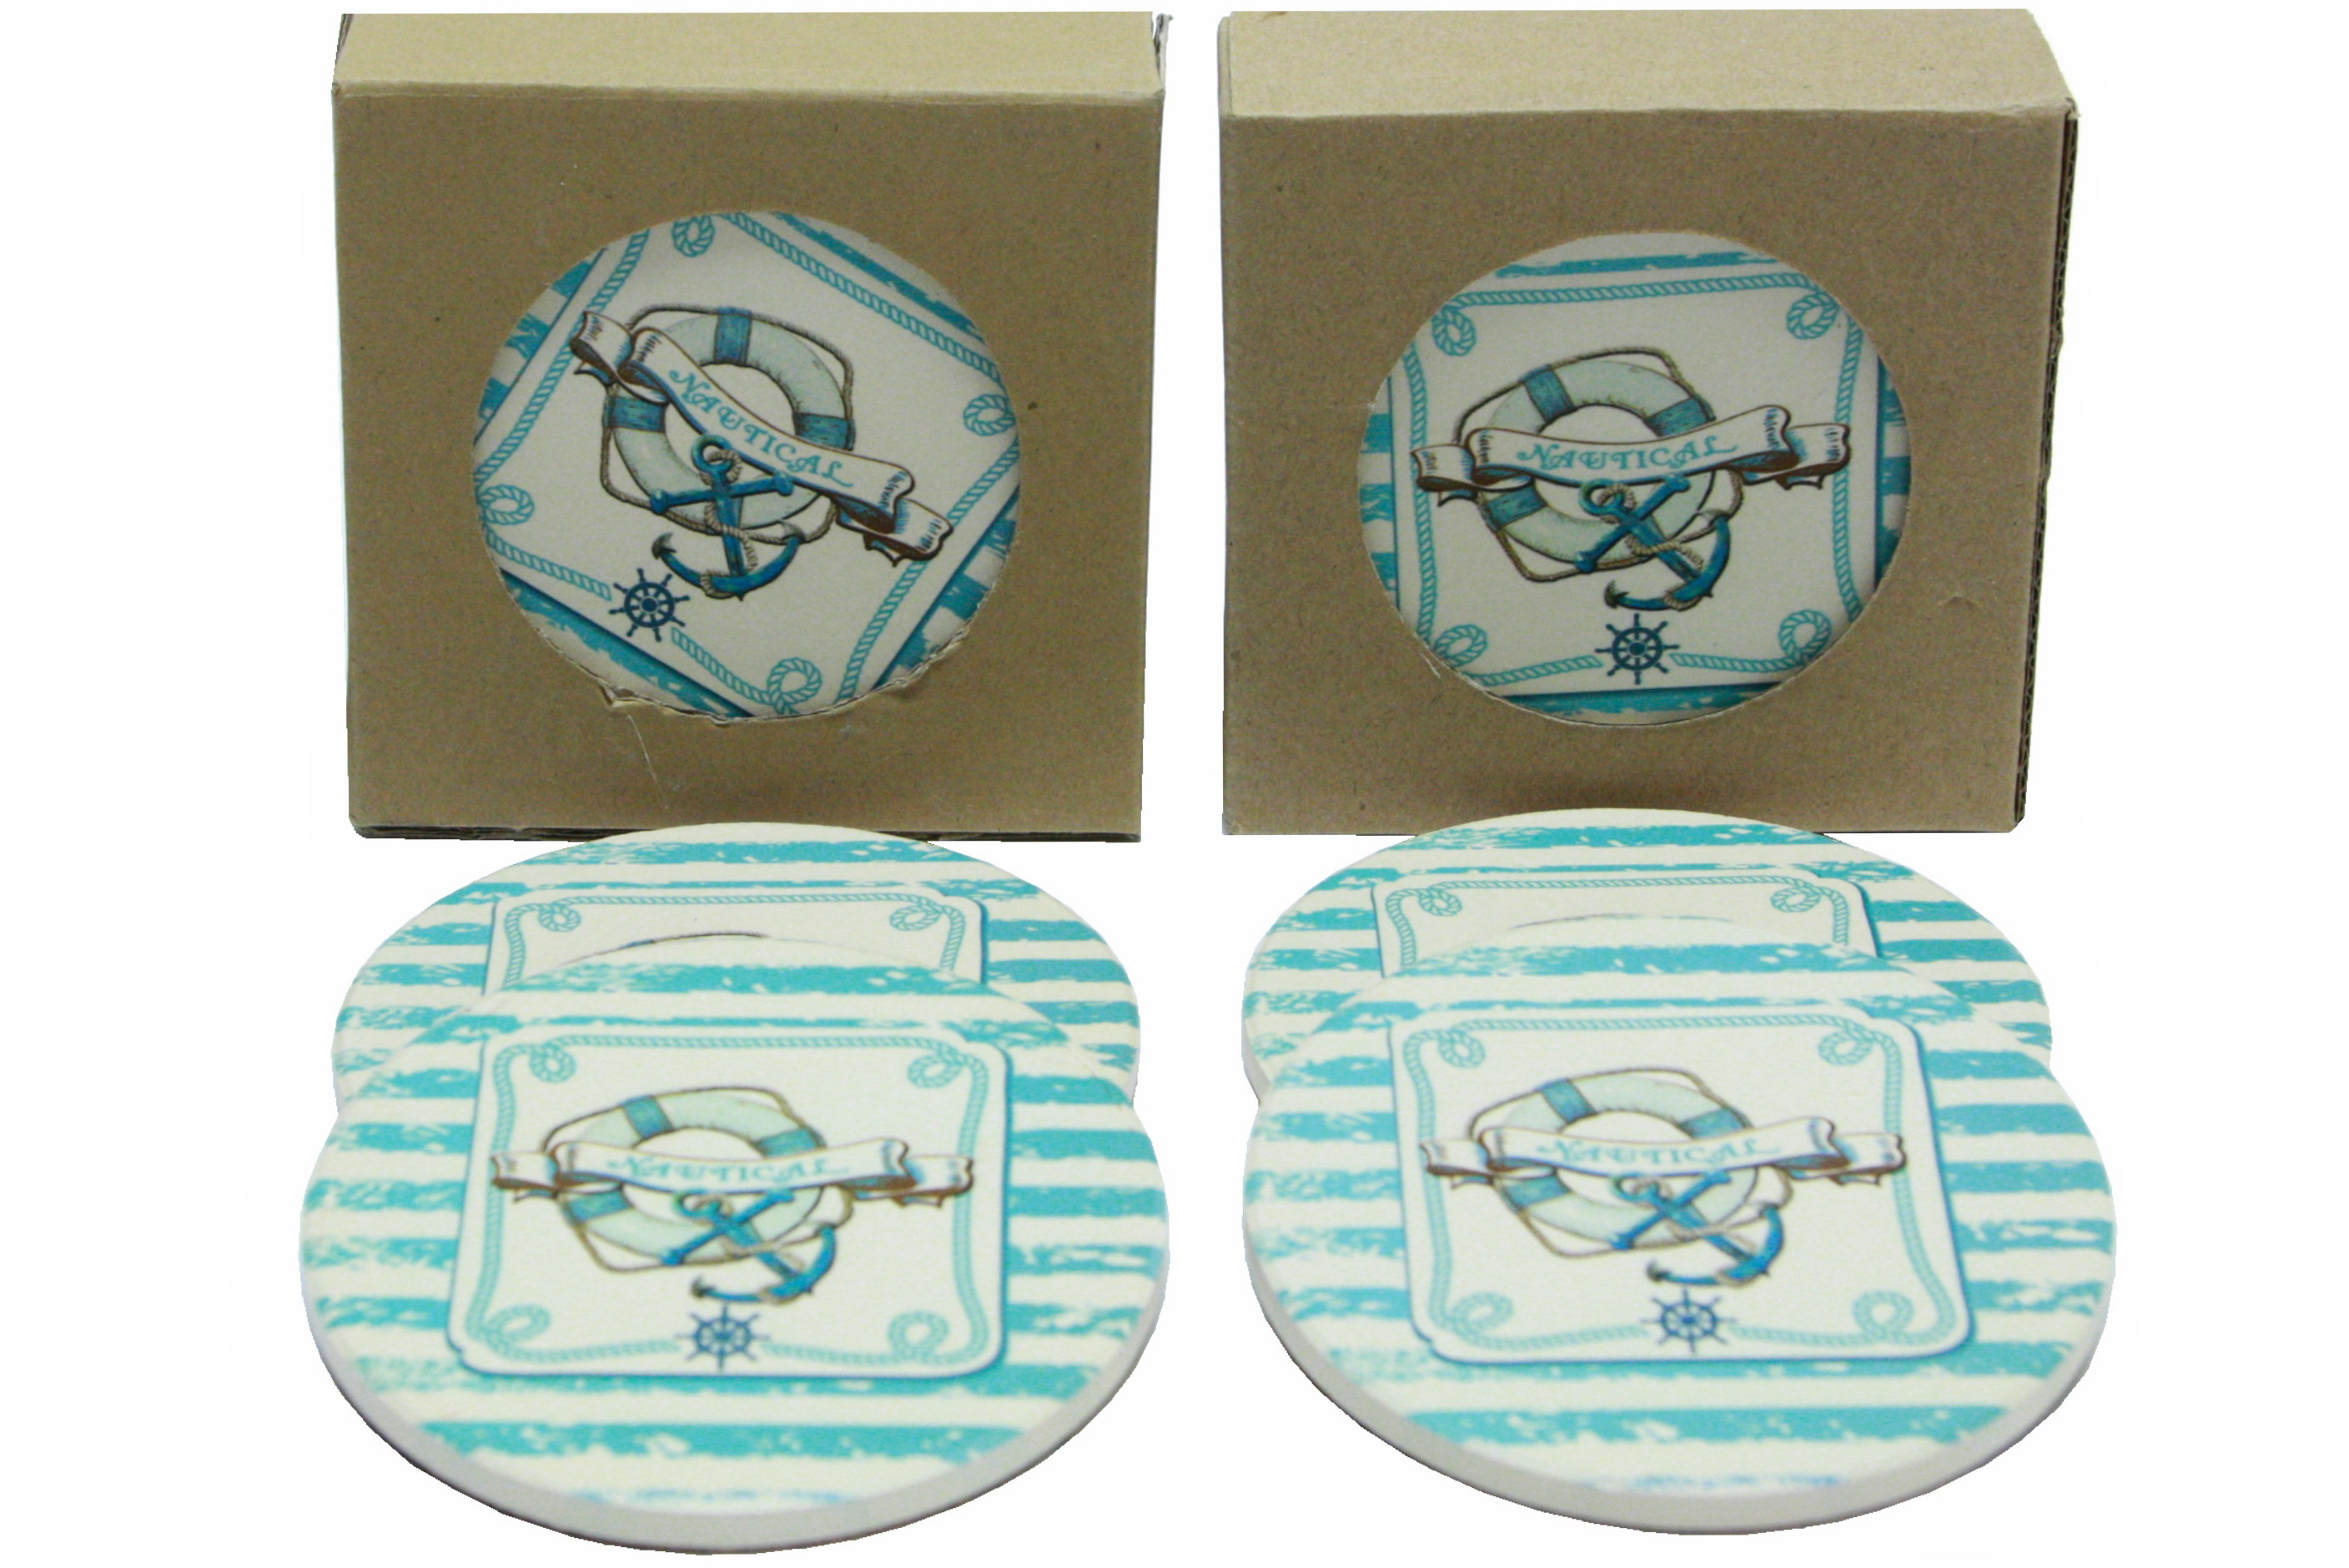 Nautical Design Coasters Set Of 4 In Window Gift Box